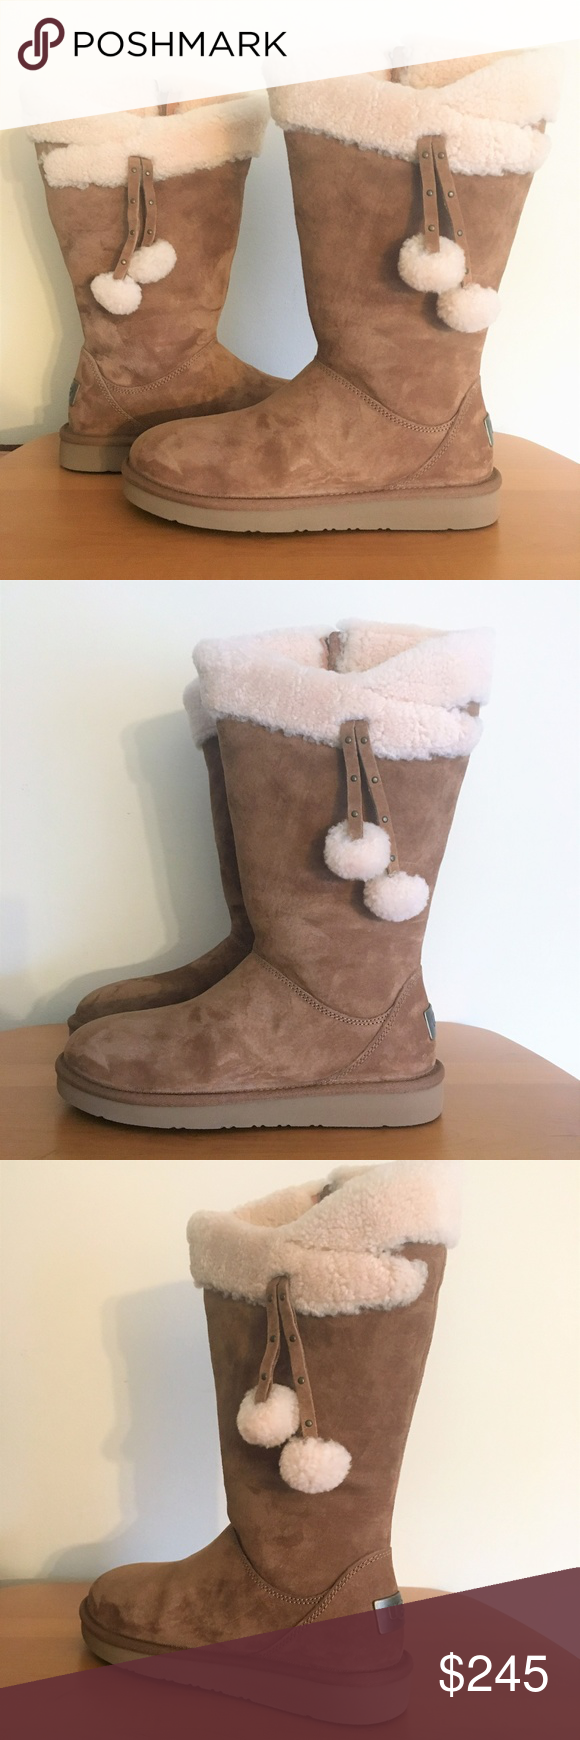 814ec5070b1 New UGG Plumdale Cuff Pom Pom Suede Boots Chestnut Crafted from rich ...